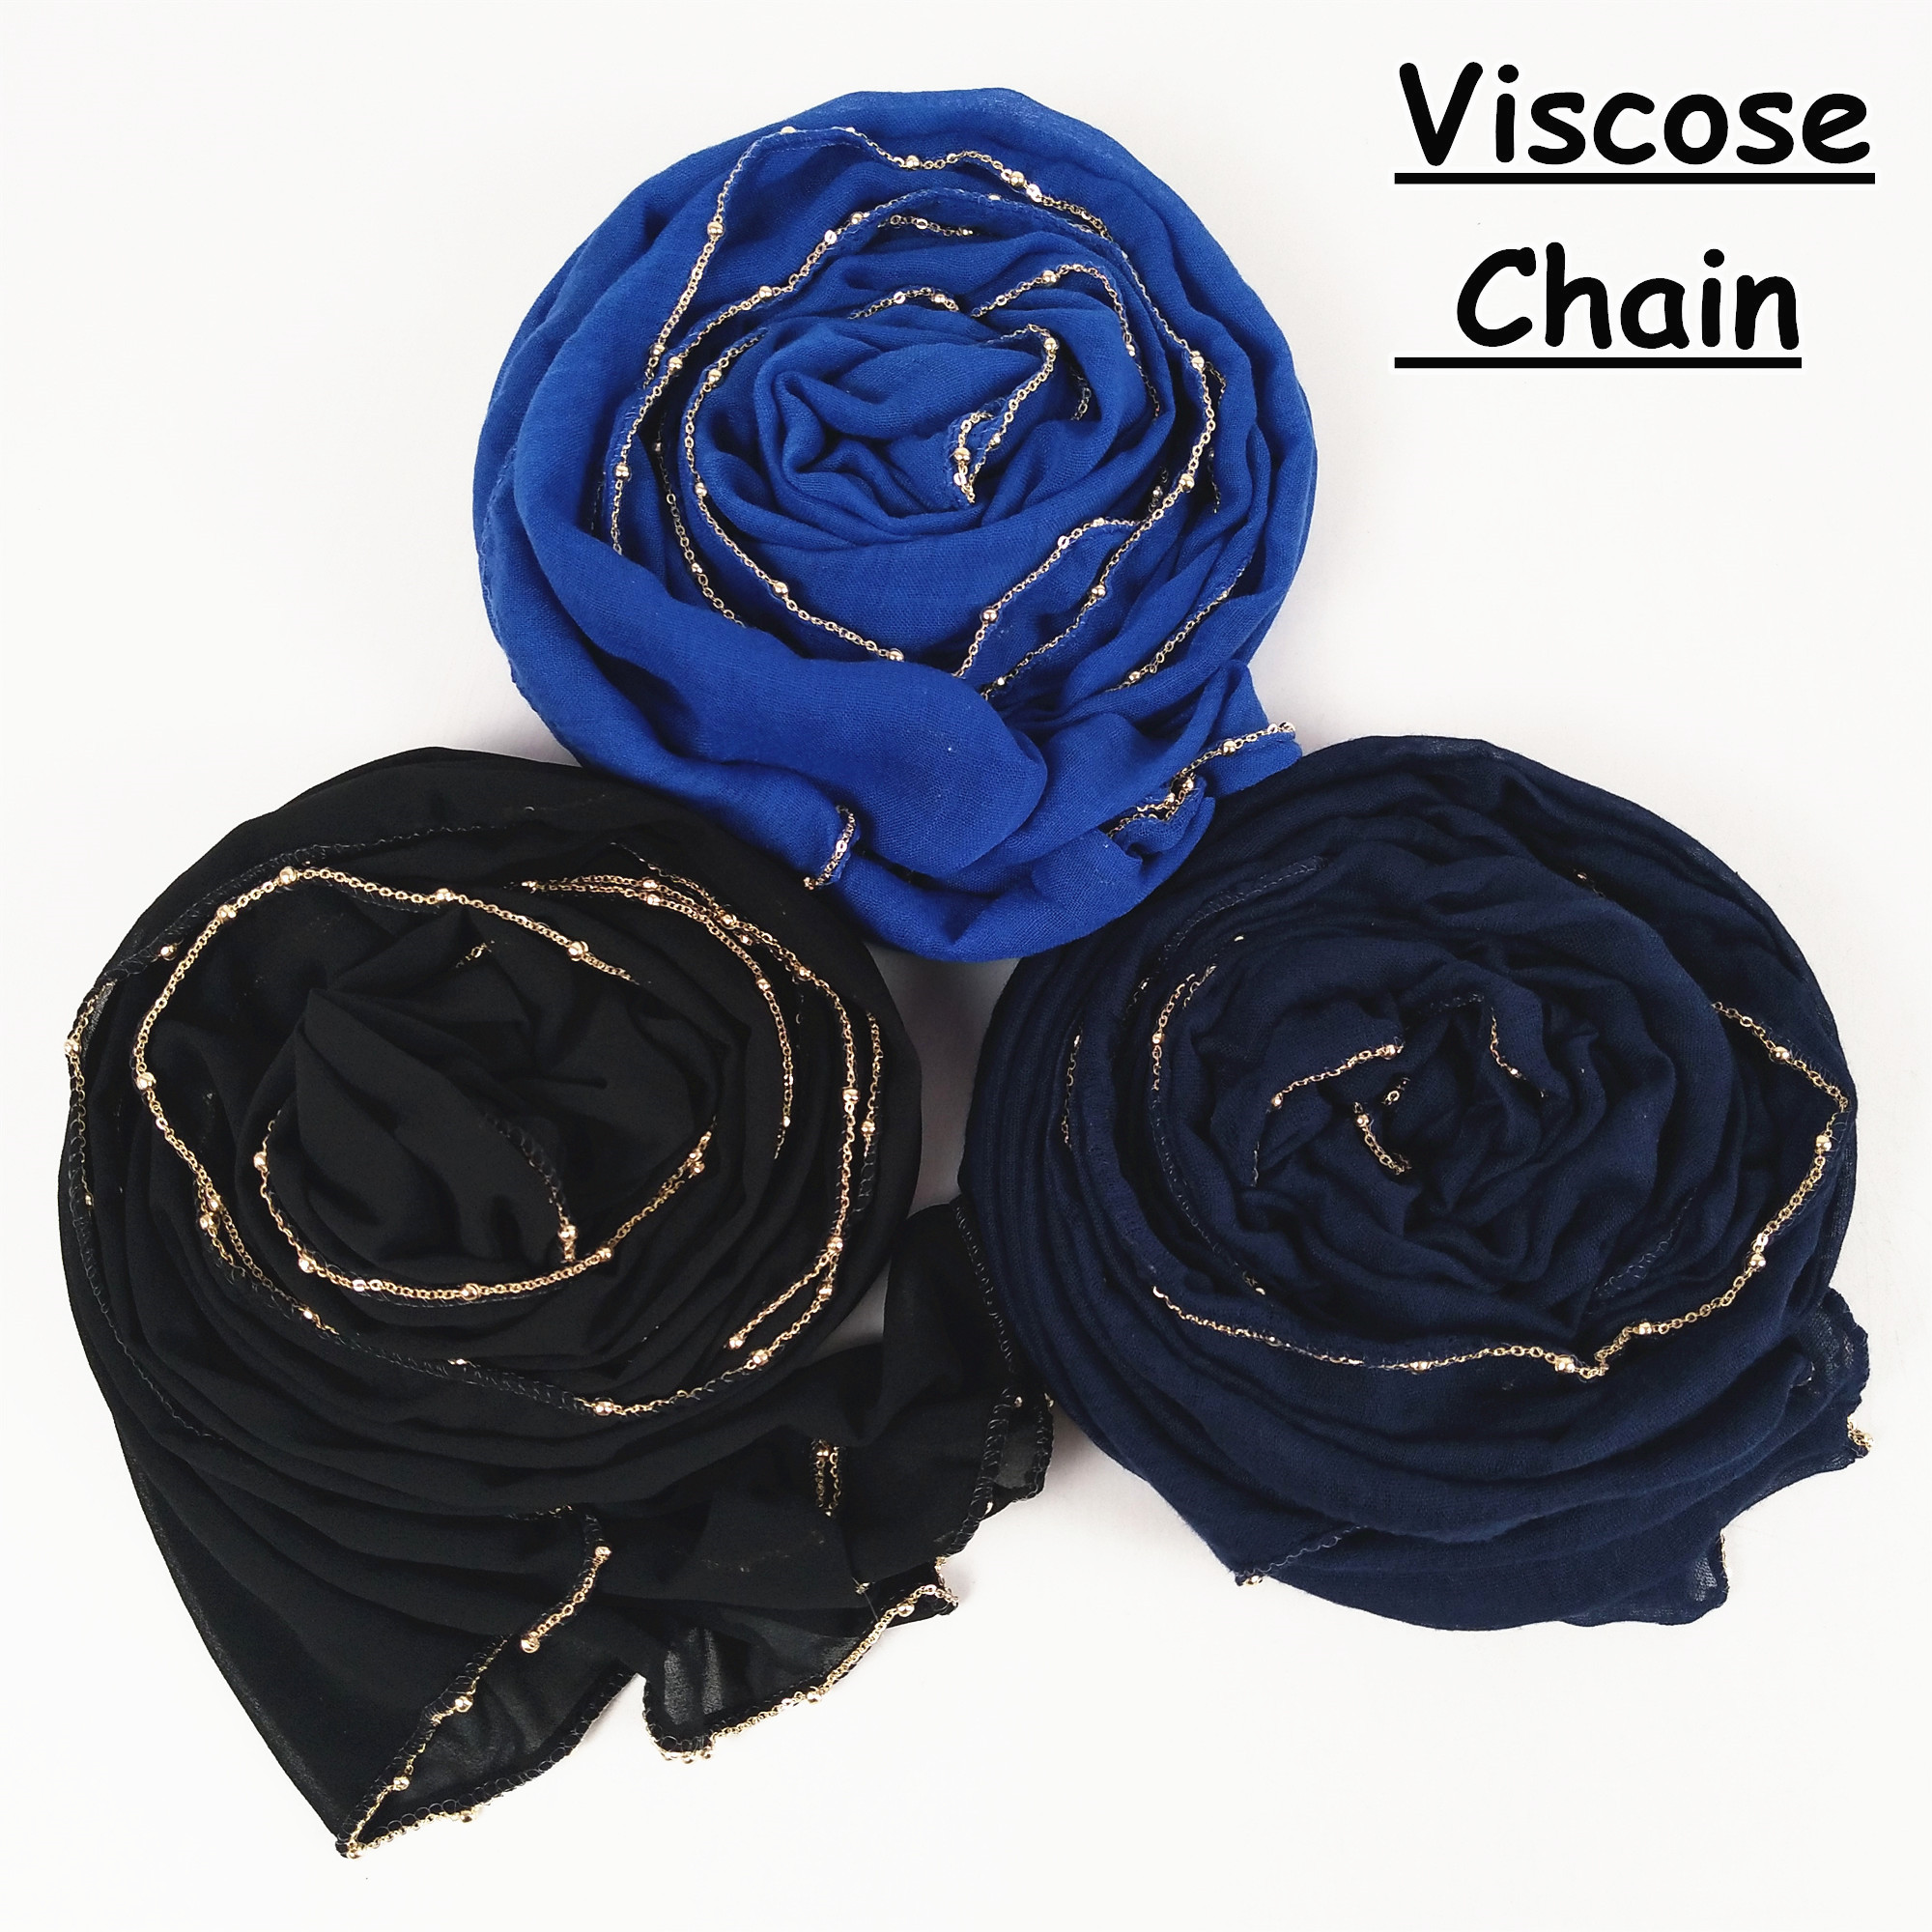 M25  High Quality Gold Chain Viscose  Hijab Scarf Women Shawl Lady Wrap Headband 180*85cm 10pcs/lot